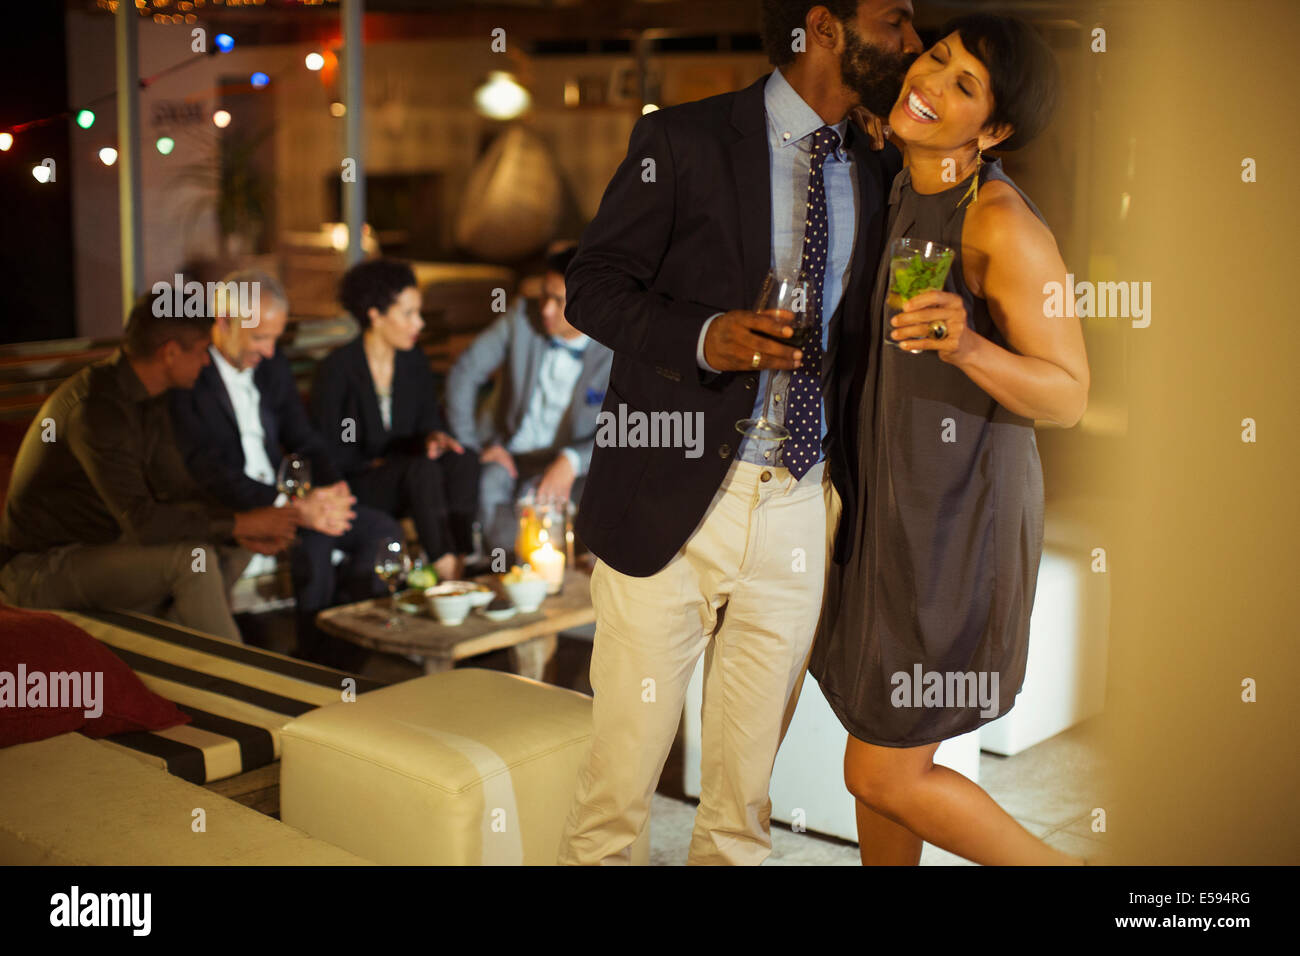 Couple kissing at party Photo Stock